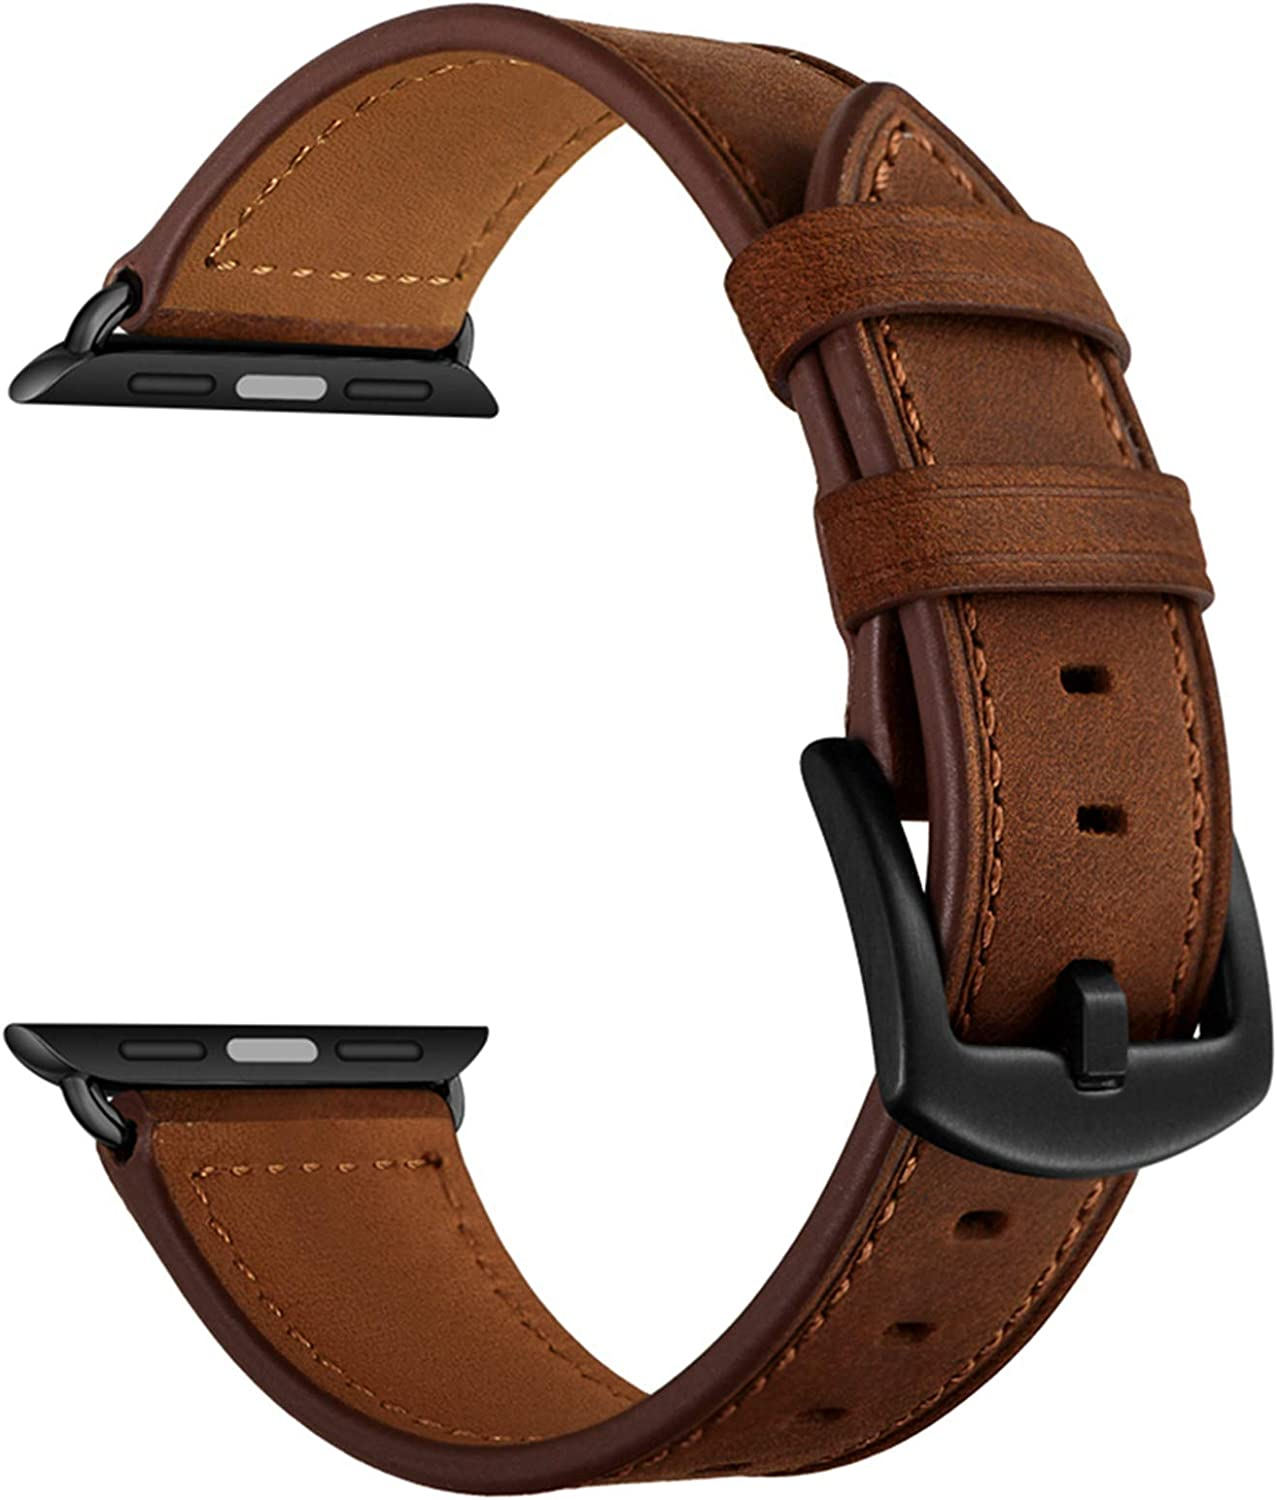 CINORS Leather Band Compatible with Apple Watch Vintage Classical Bands Dark Brown Replacement Strap for iWatch Series 6 SE 5 4 3 2 1 Nike Space Black Grey 42mm 44mm Men Women, Brown